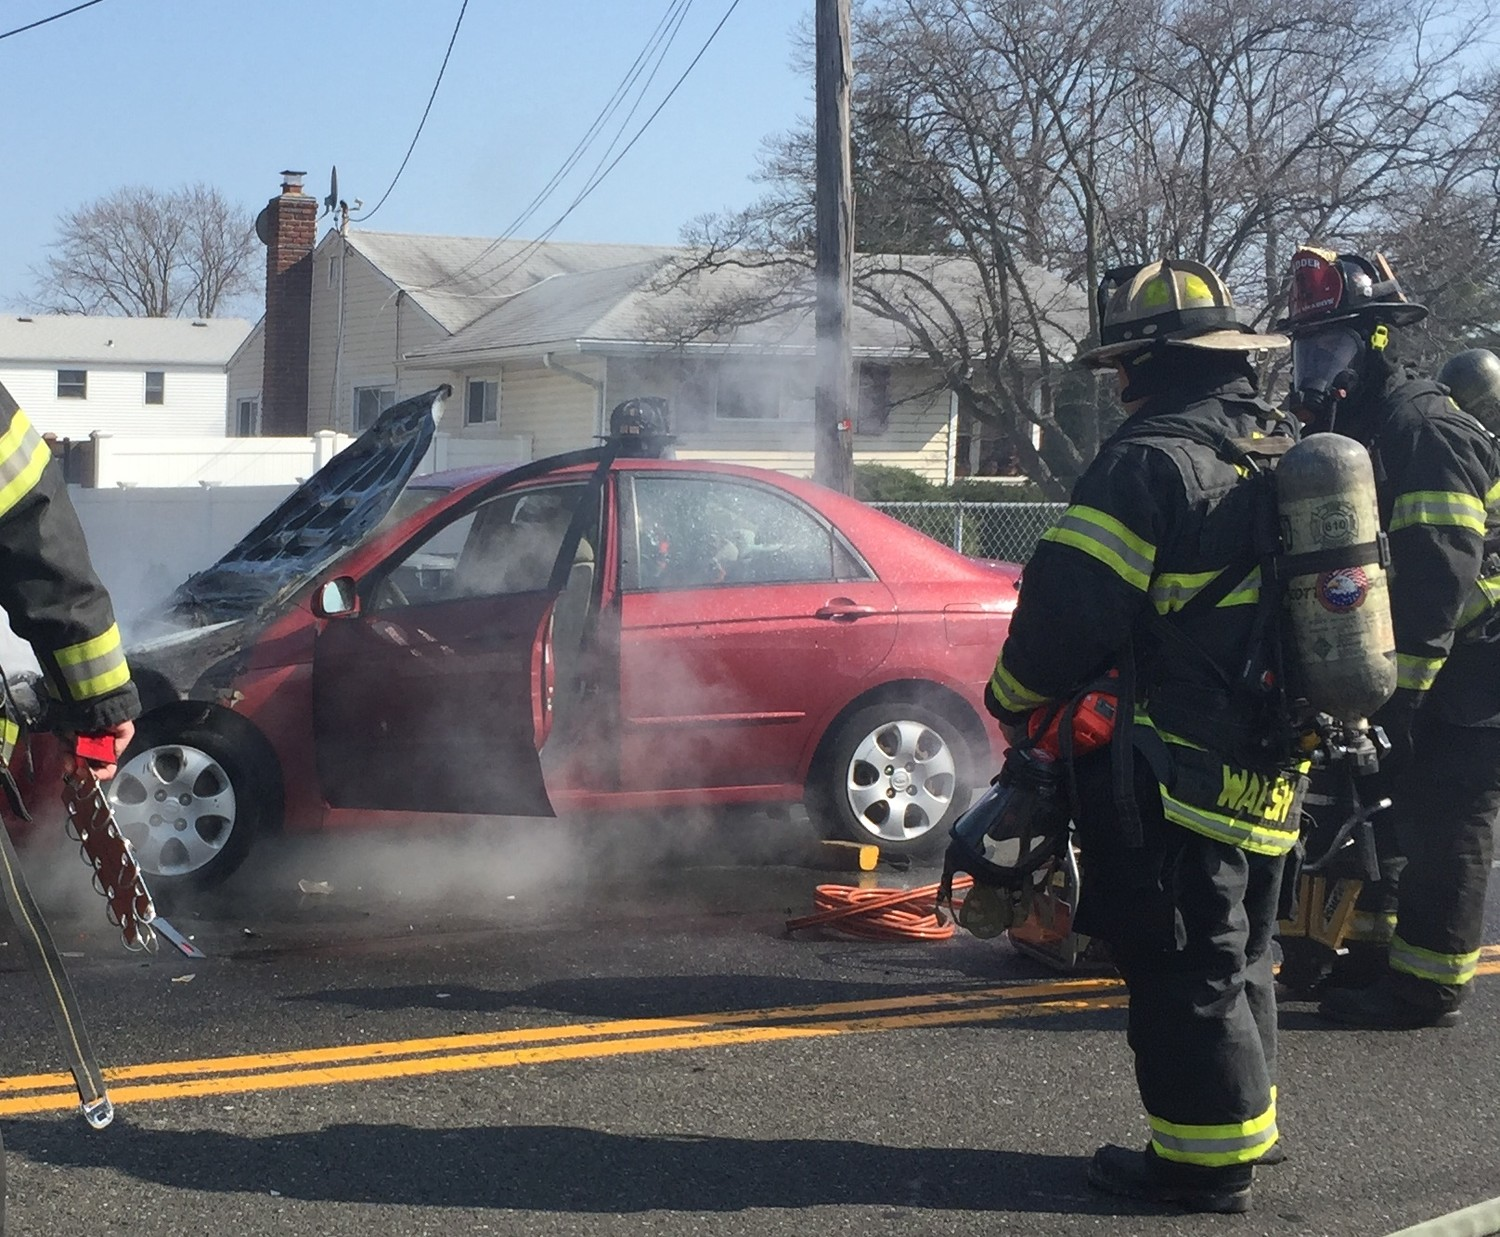 The East Meadow Fire Department responded to the two-car motor vehicle accident on Front Street, which caused the street to temporarily close.